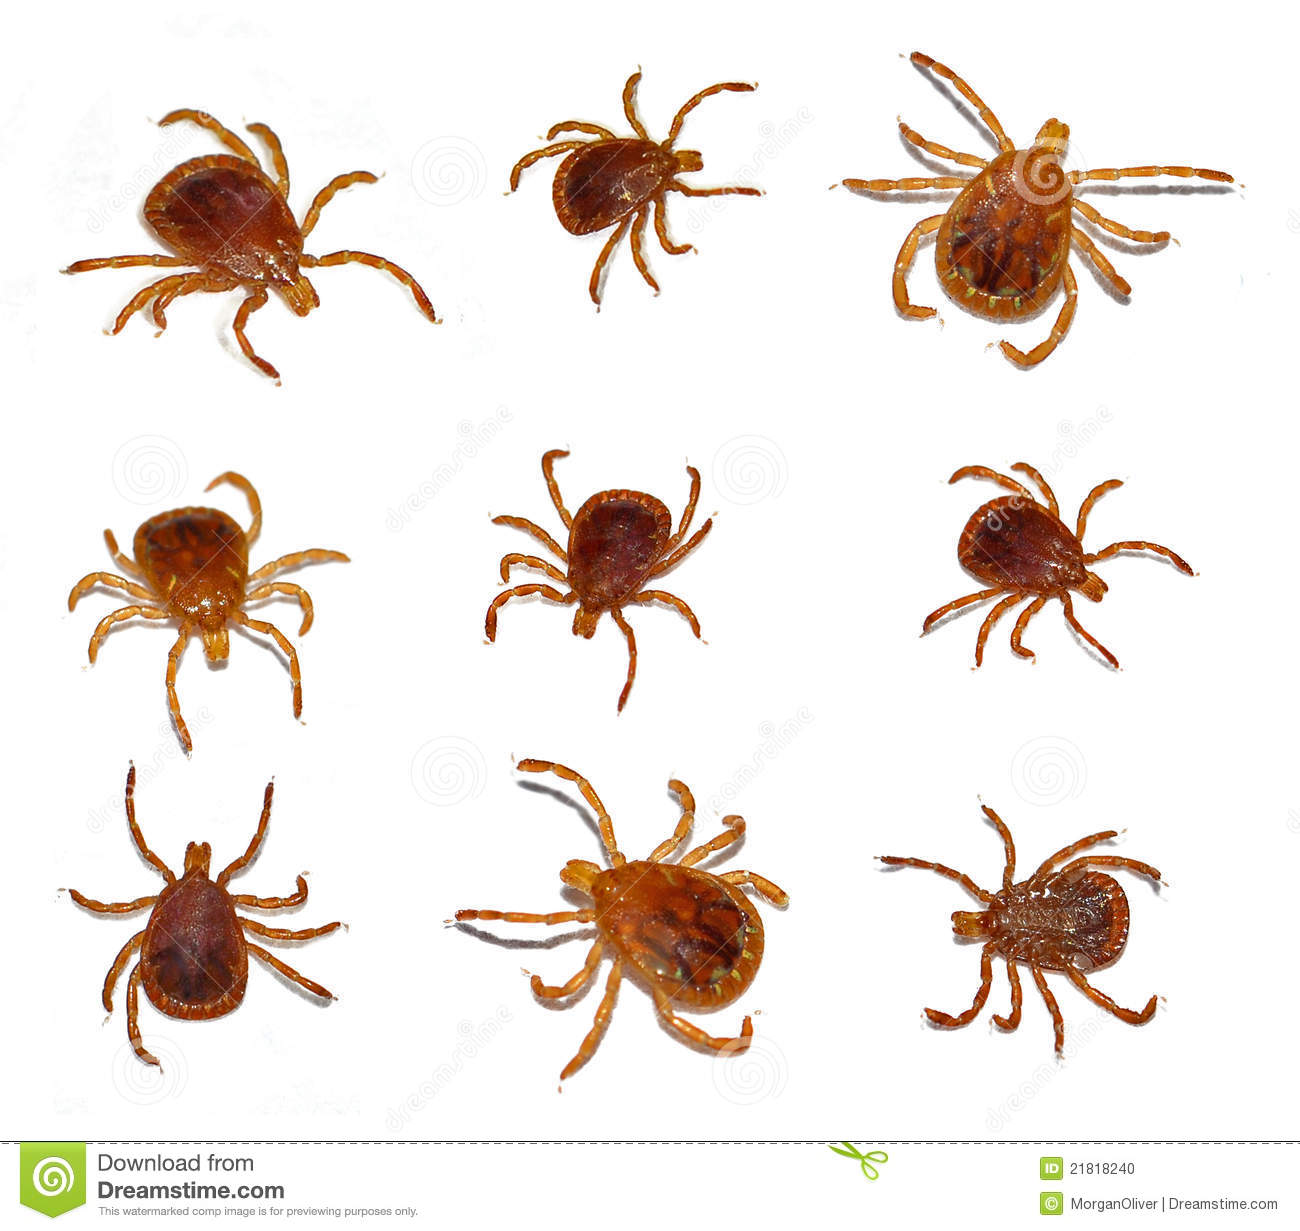 Lone Star Tick Insect Stock Photo Image 21818240